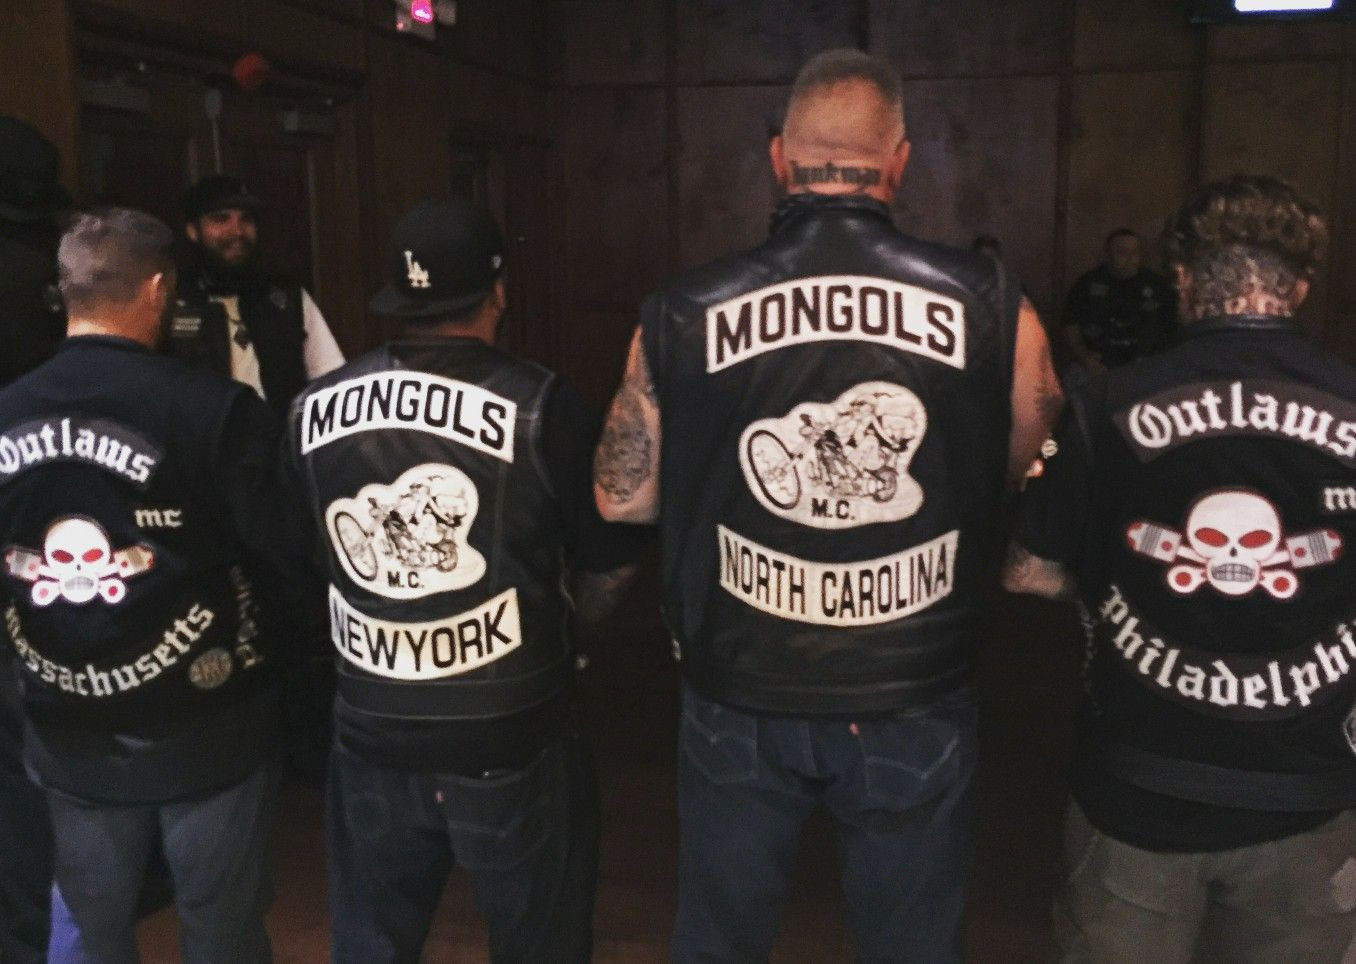 Black And White Mongols Mc And Outlaws Mc Junkman 1 With